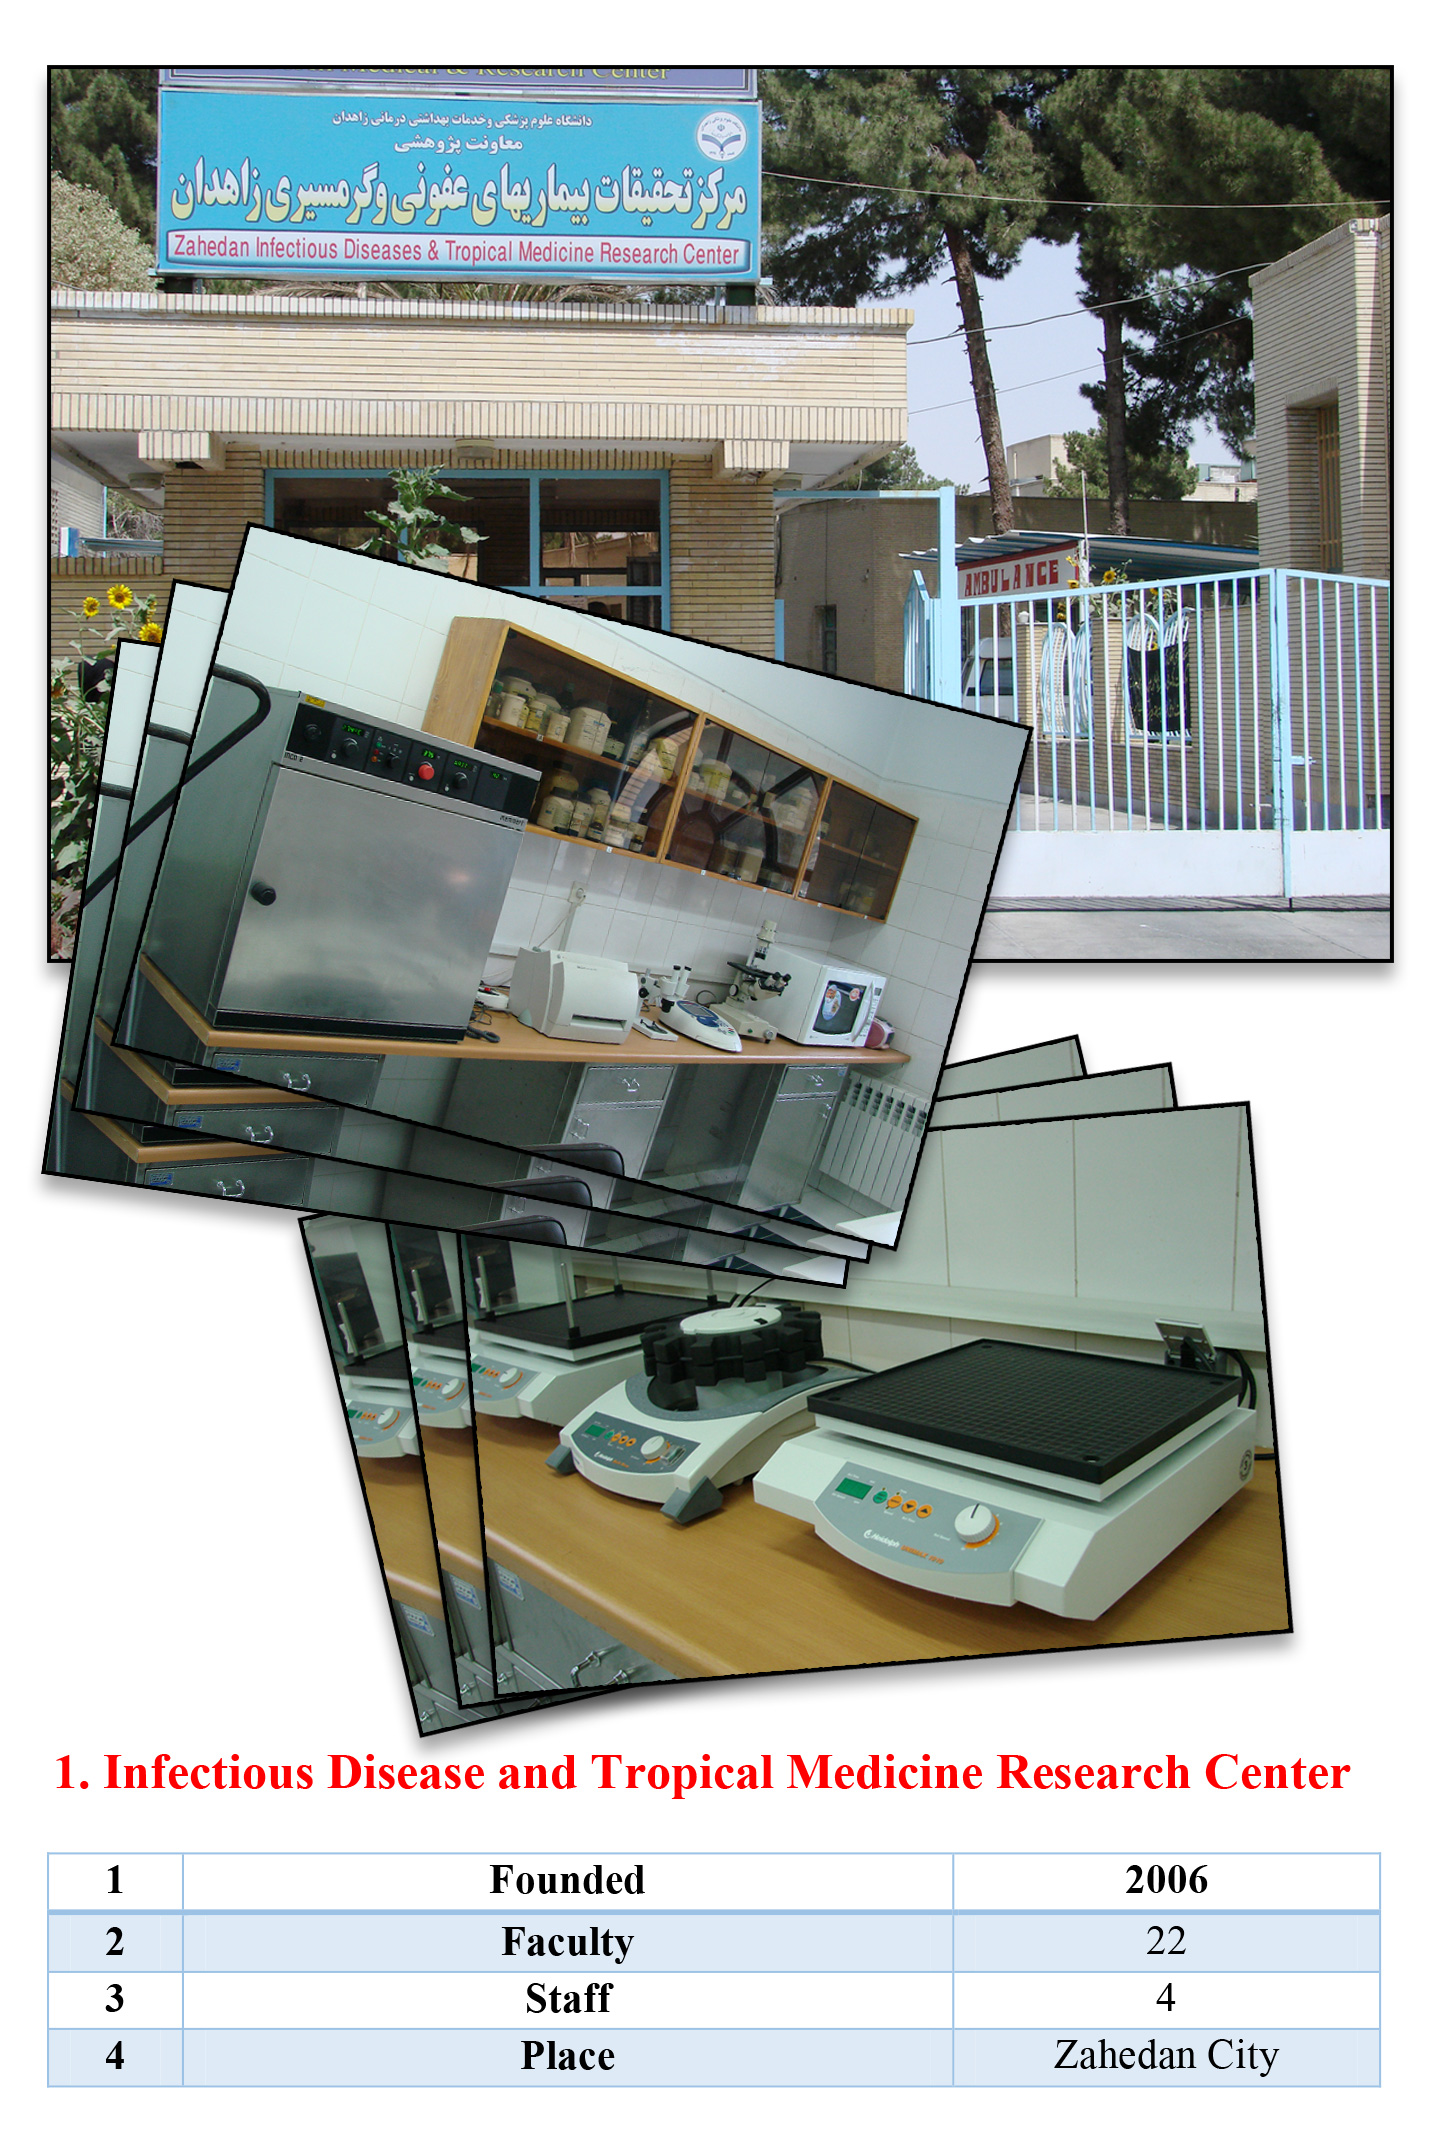 Infectious Disease and Tropical Medicine Research Center